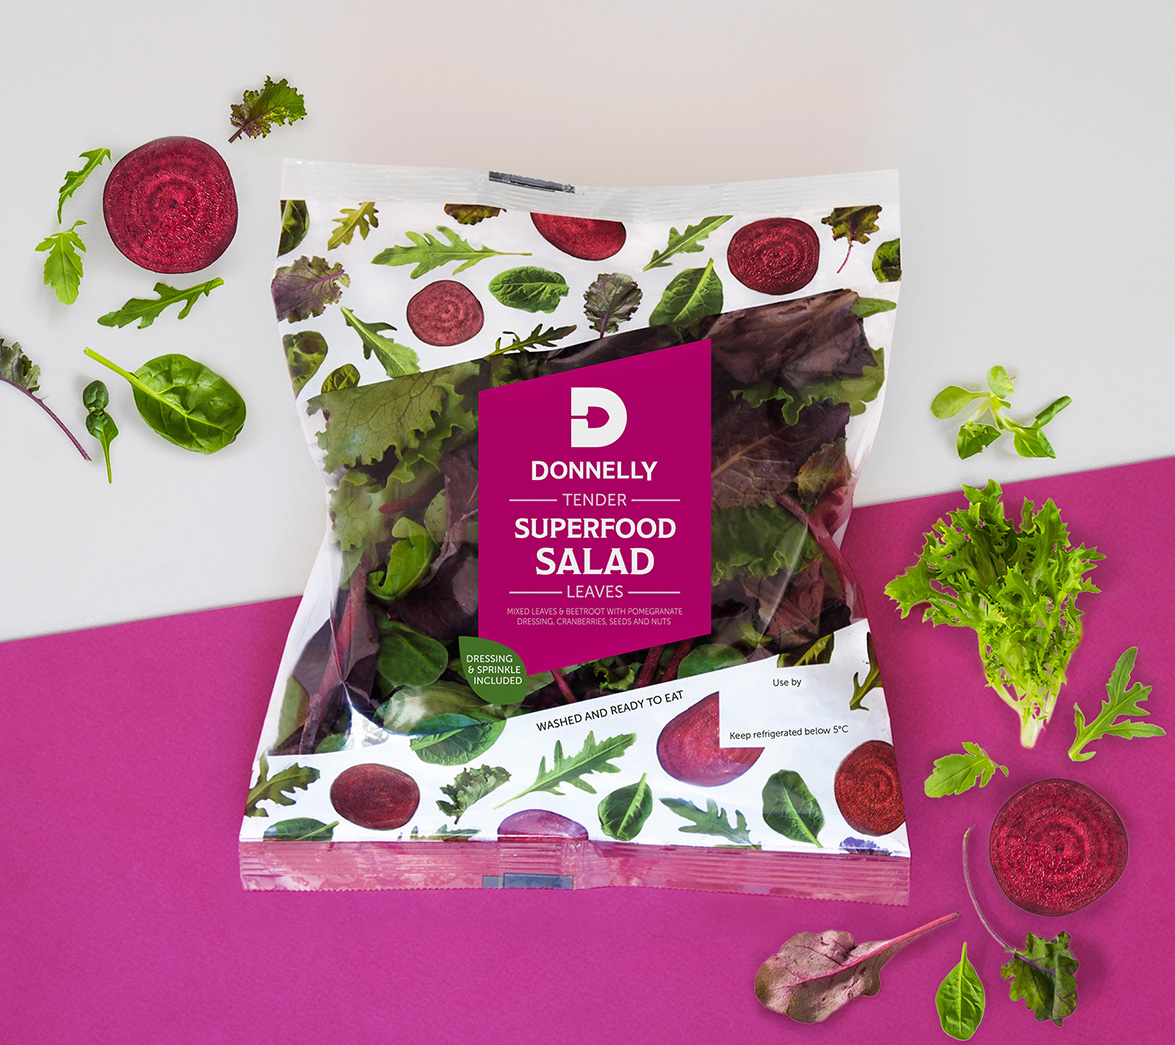 salad bag branding and packaging purple background donnelly